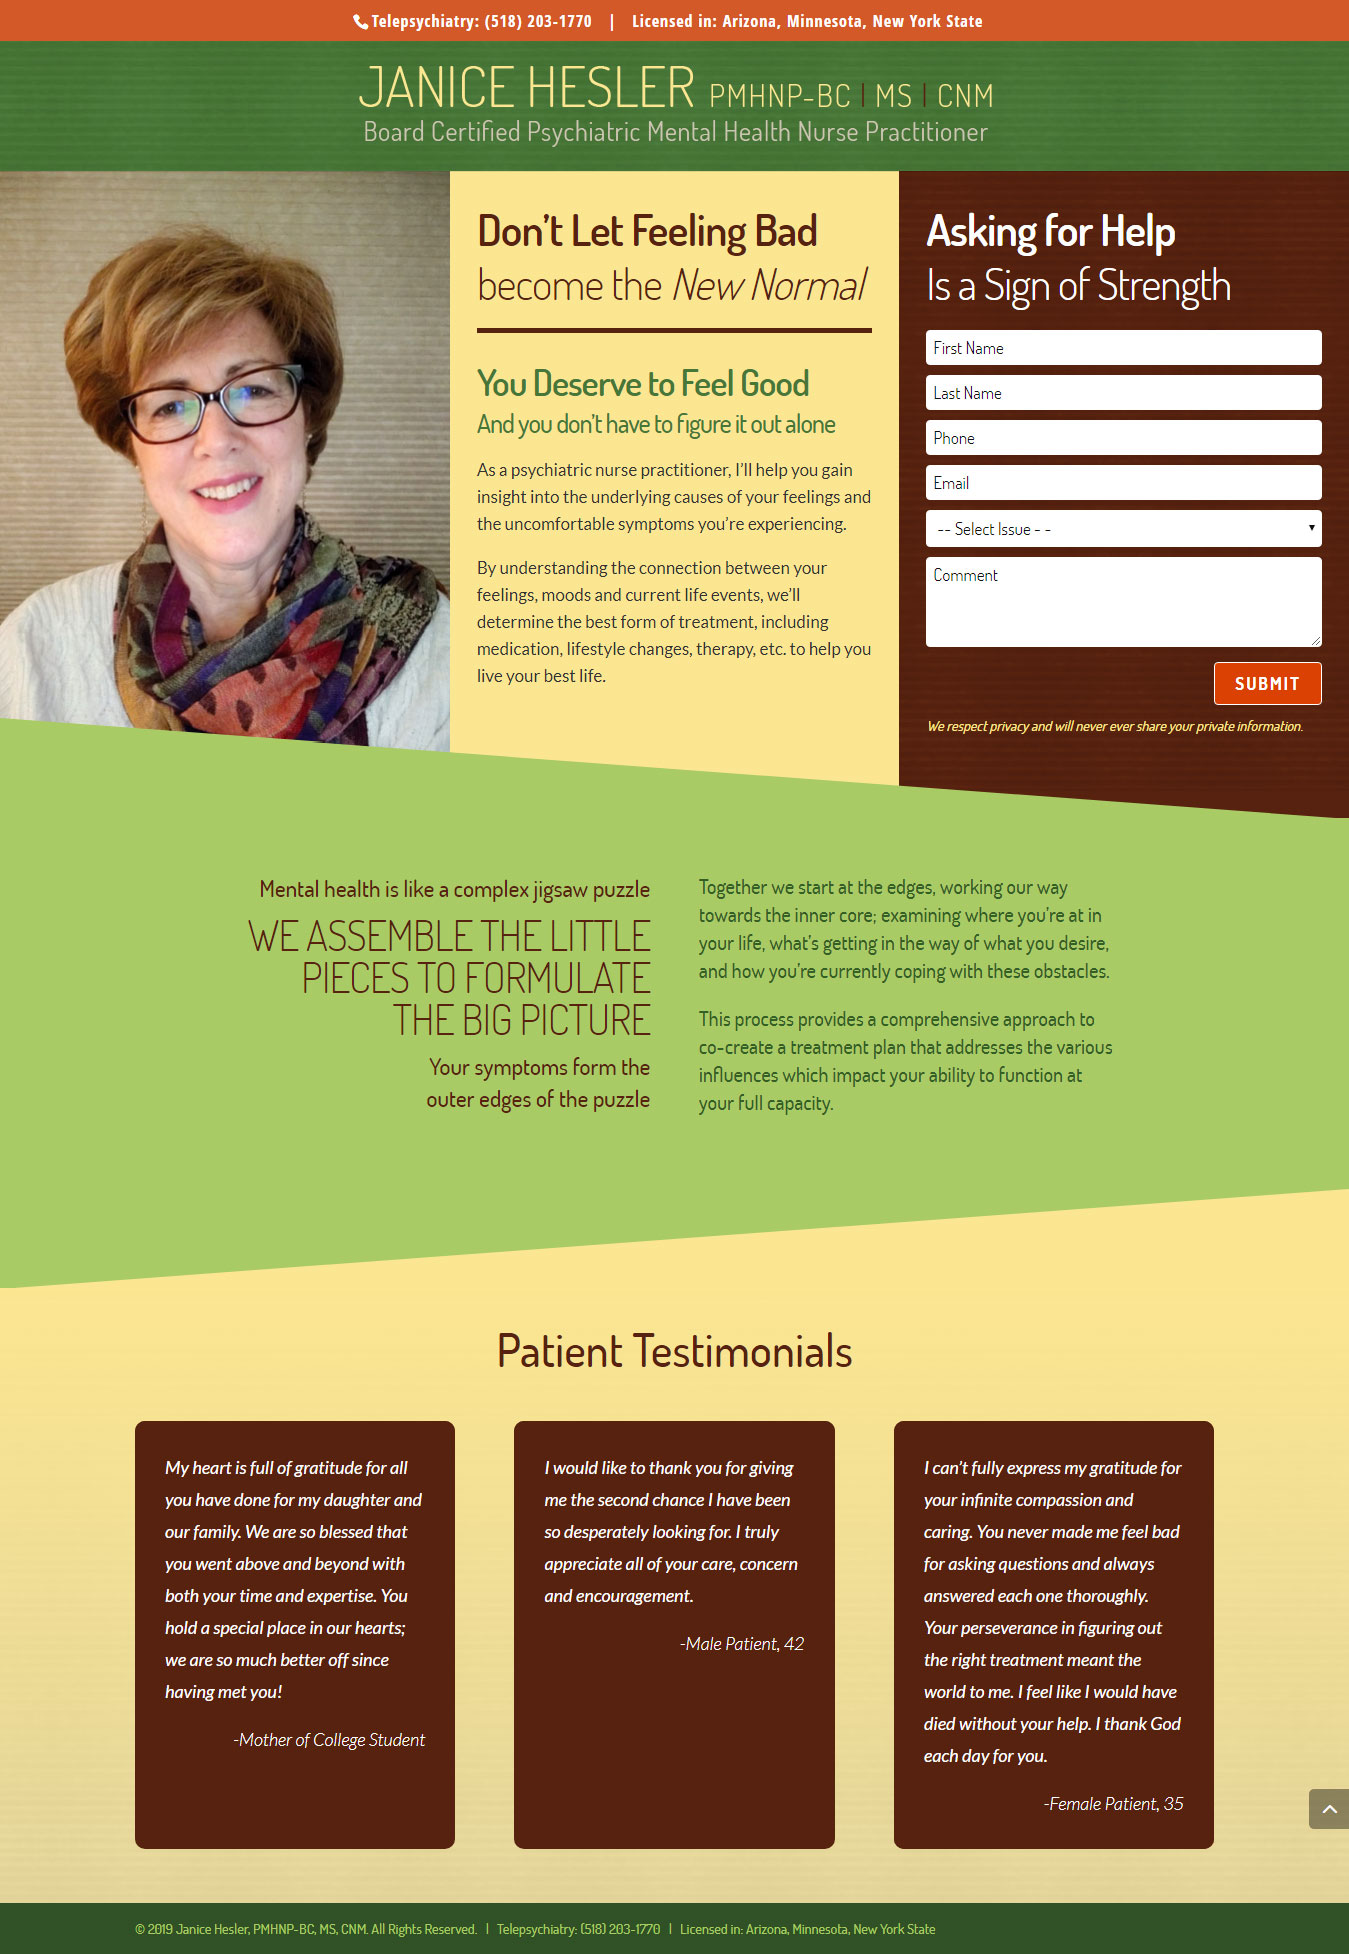 Website Design for a Psychiatric Nurse Practitioner